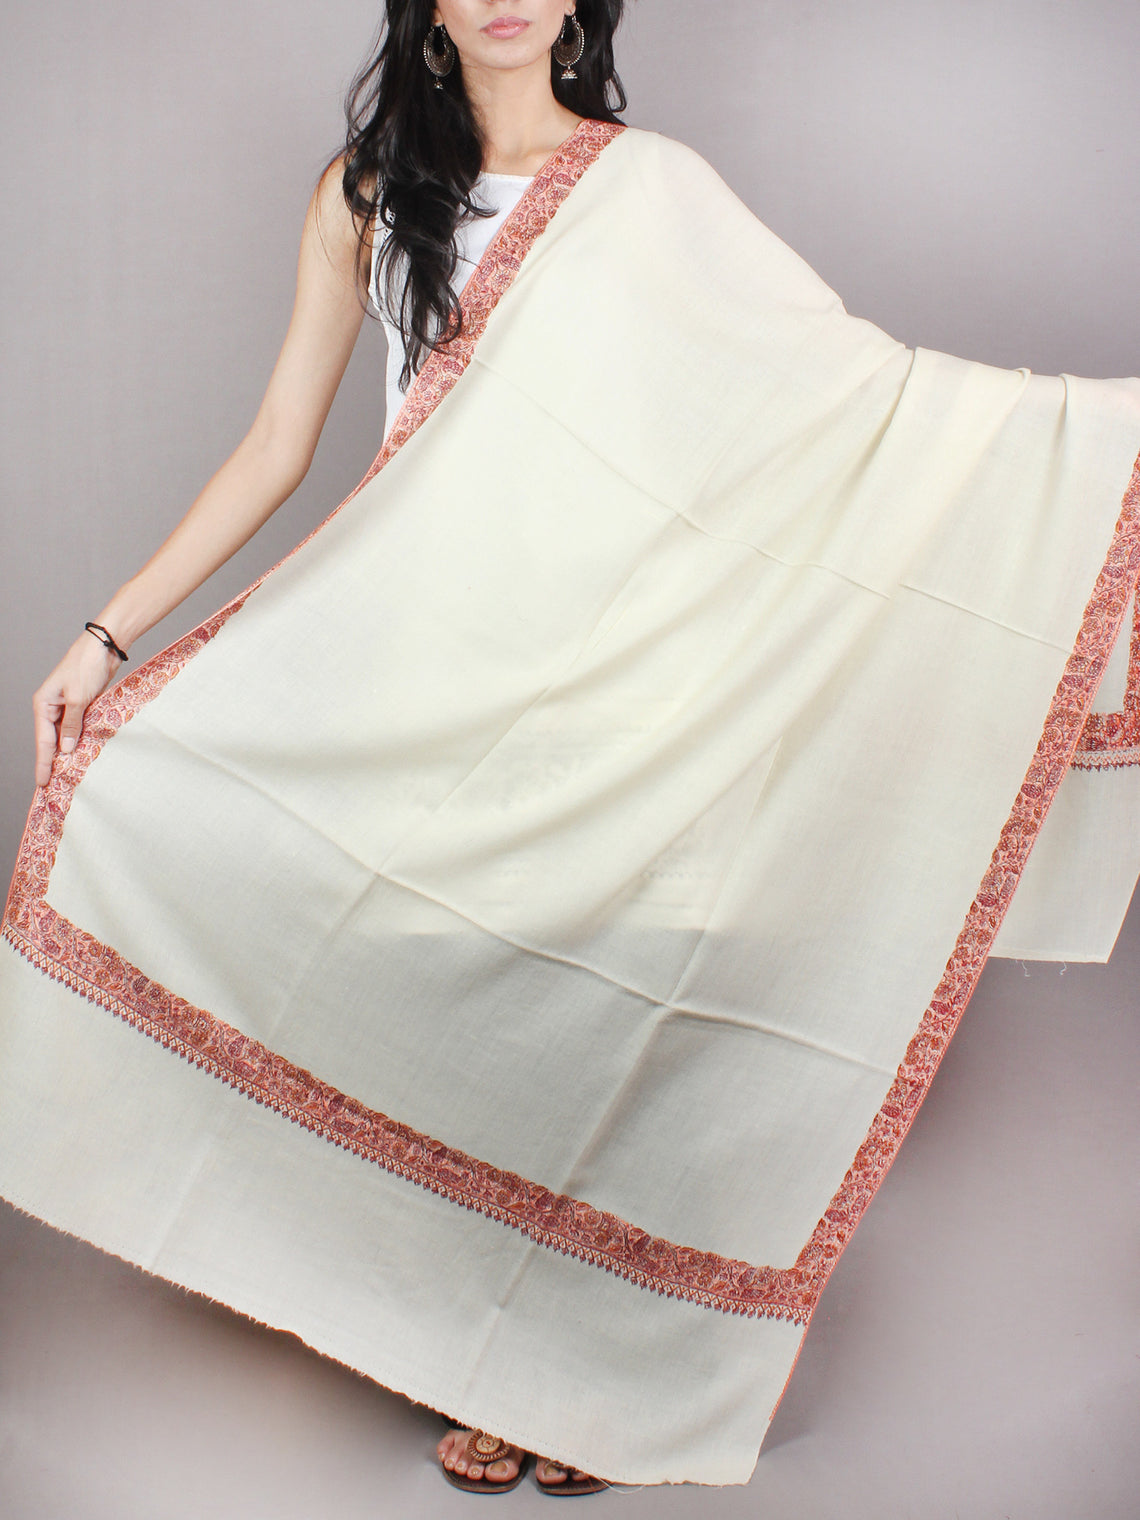 Cream Pink Black Yellow Pure Wool Nemdor Cashmere Shawl From Kashmir - S200502